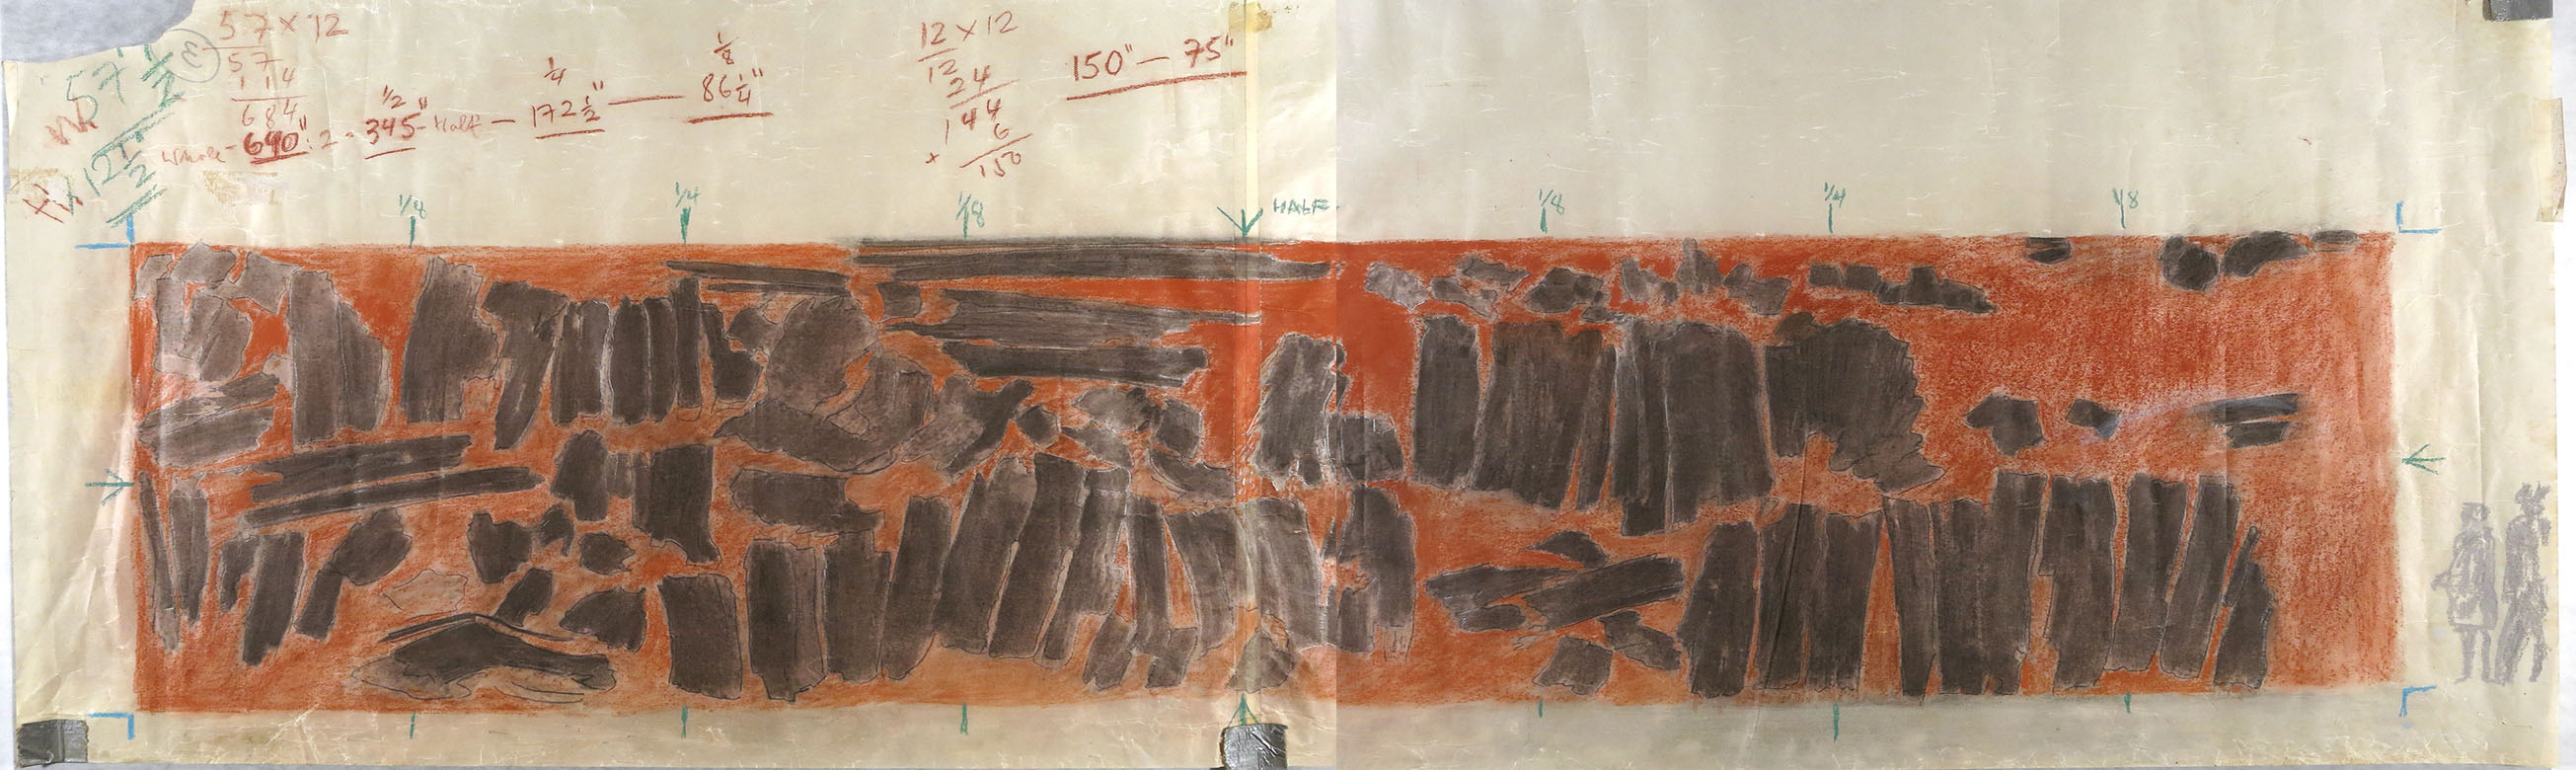 Figure 15 Study for Apocolypsis cum figuras (Crossing), 1975 crayon, charcoal, and graphite on two joined sheets of wove paper 18 3/16 x 47 ¼ in (46 x 120 cm) Friedel Dzubas Estate Archives